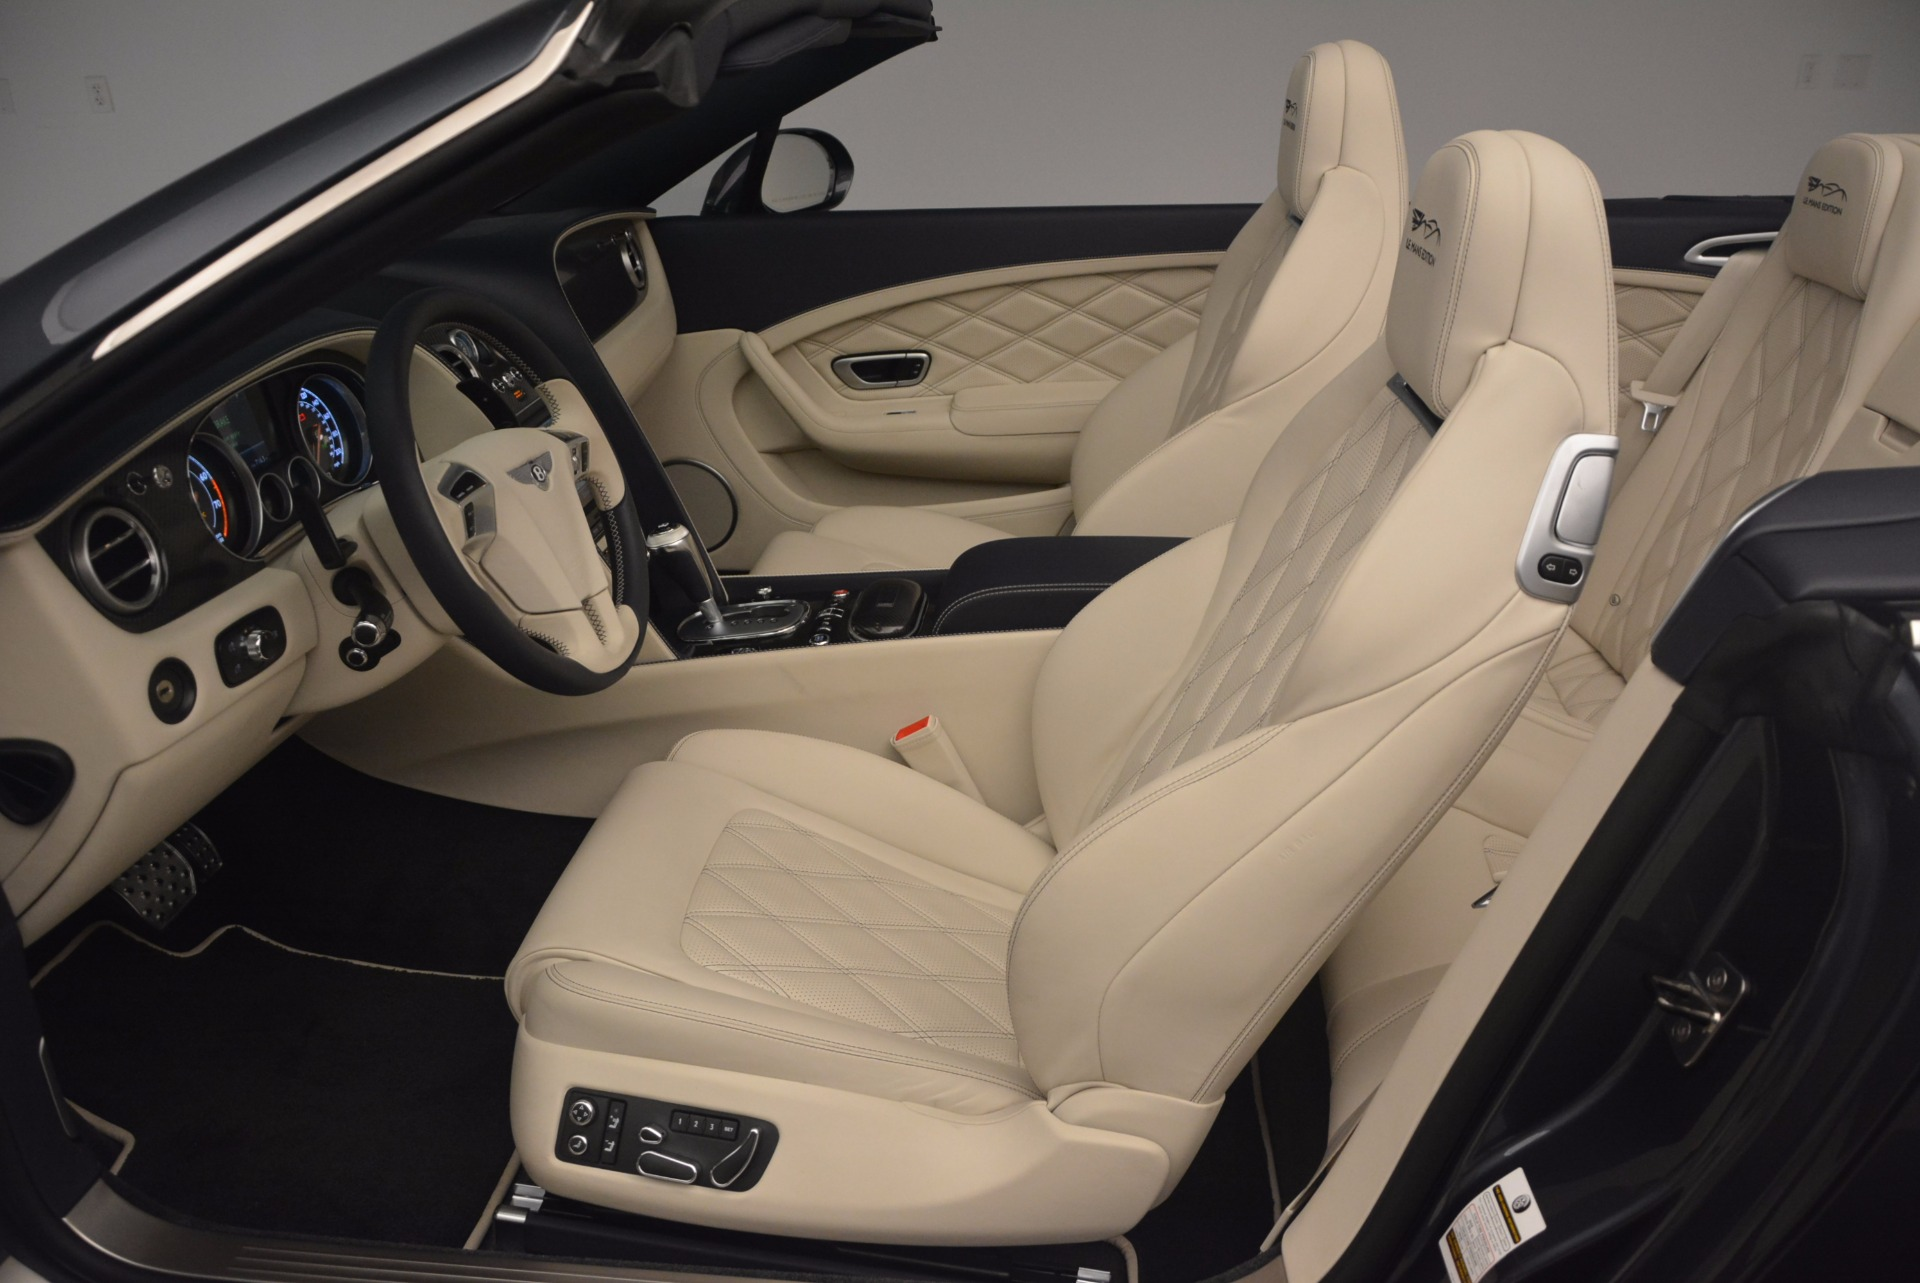 Used 2013 Bentley Continental GT V8 Le Mans Edition, 1 of 48 For Sale In Greenwich, CT 1288_p34